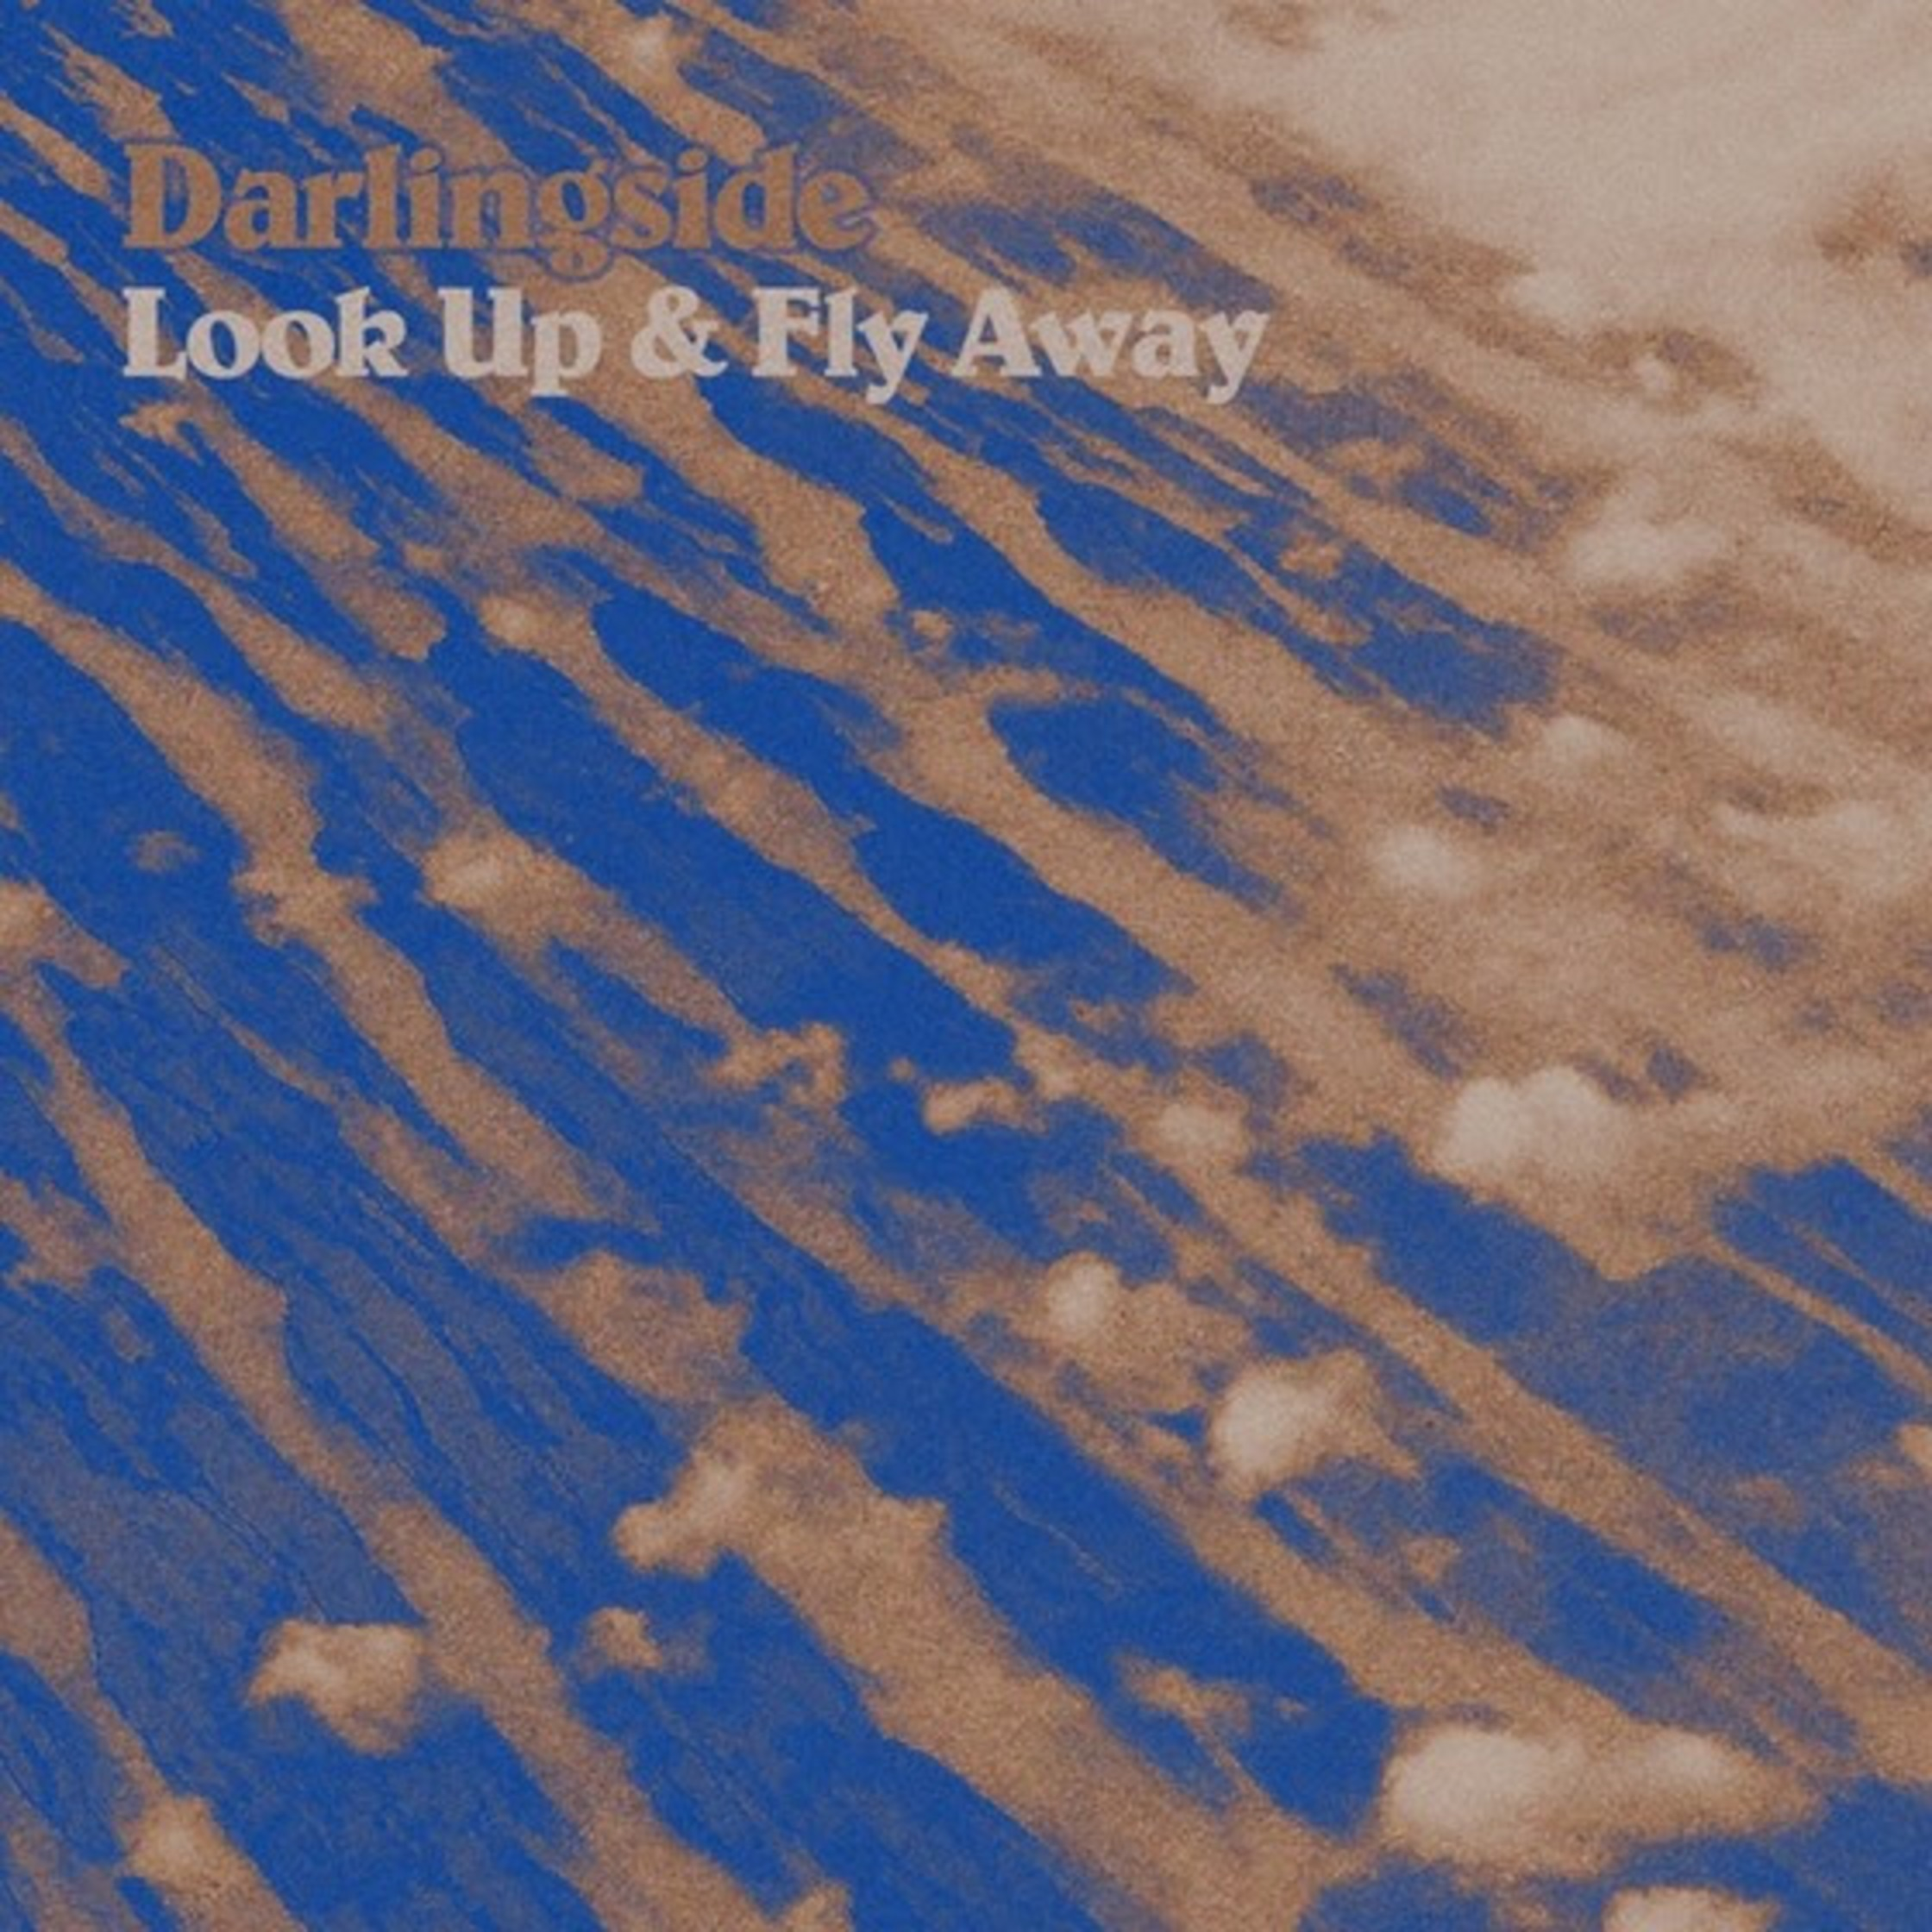 Darlingside Announce Tour and New EP LOOK UP & FLY AWAY